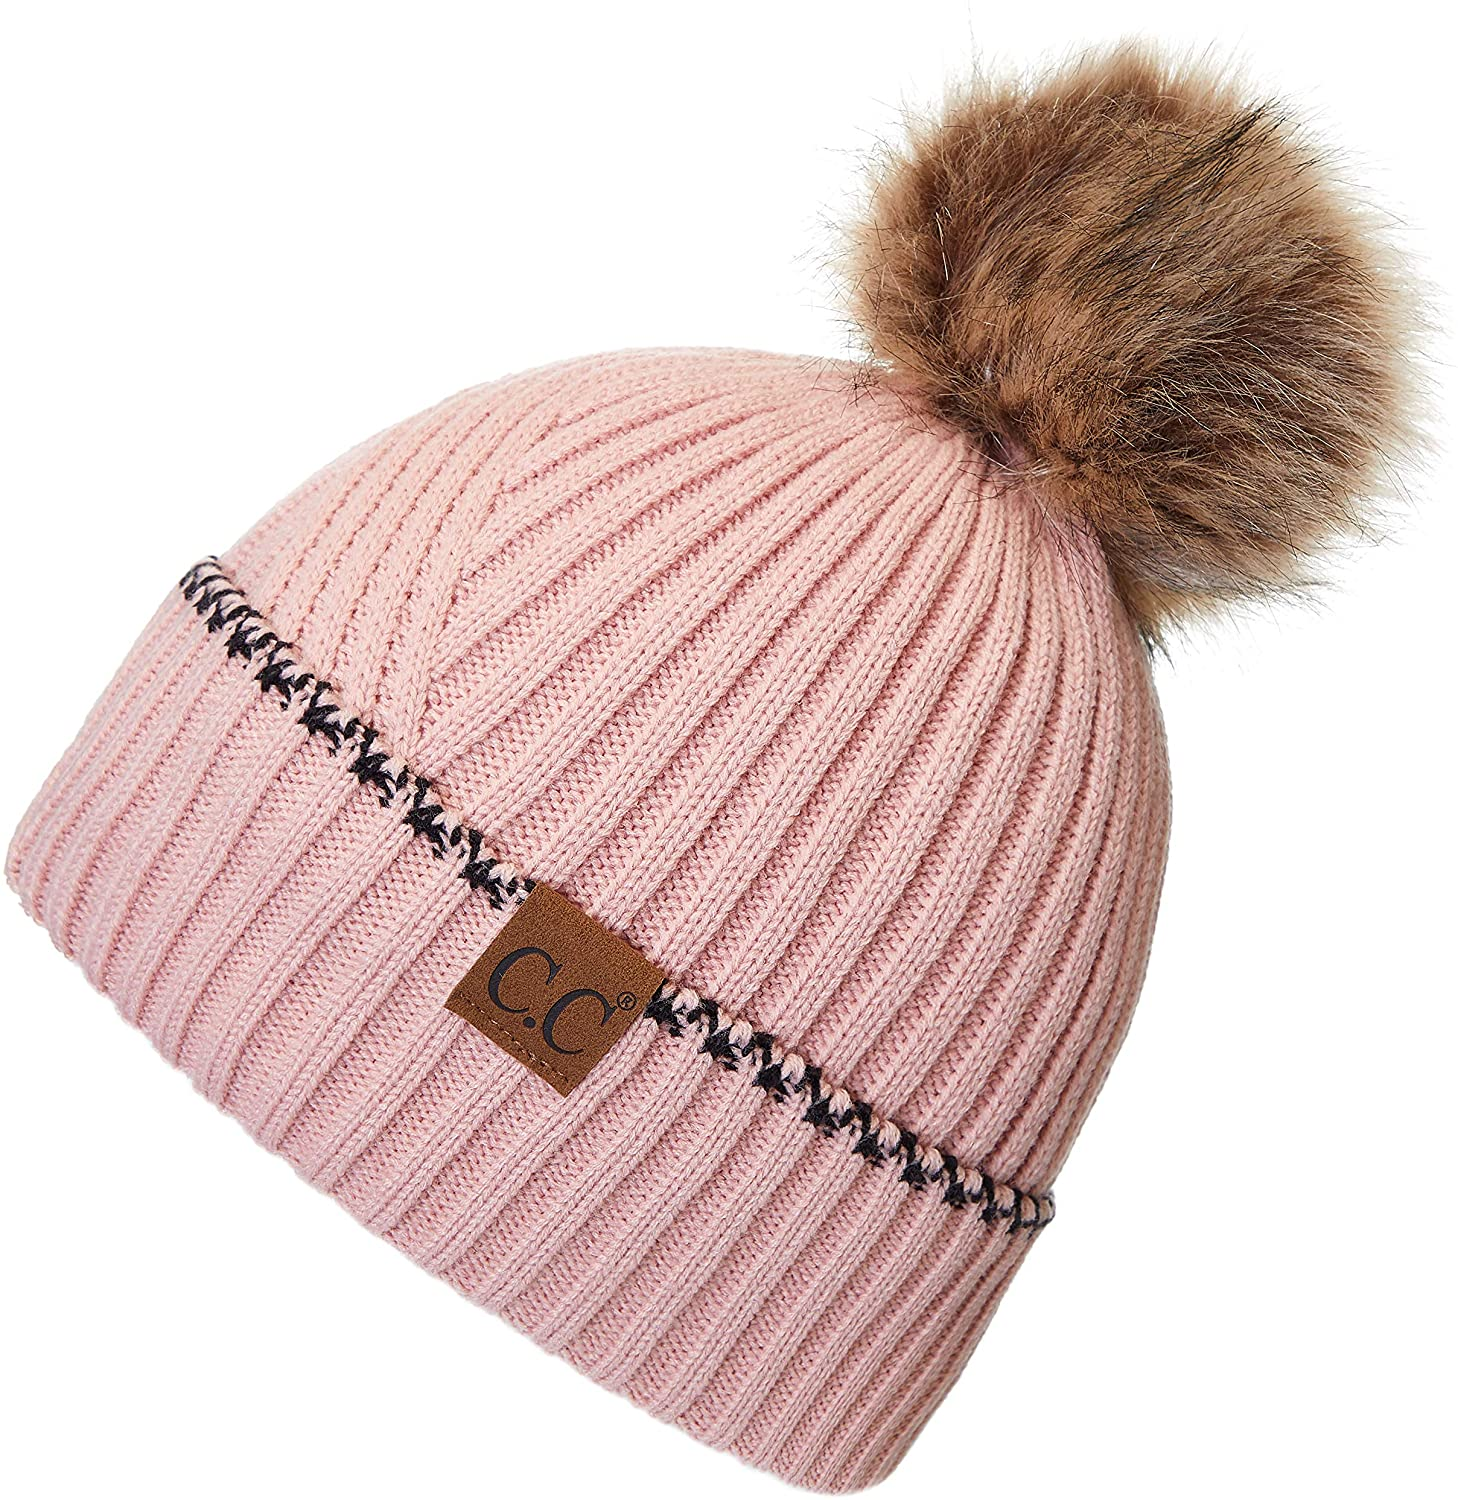 C.C Exclusives Solid Pom Beanie Hat with Accented Cuff (YJ-920)